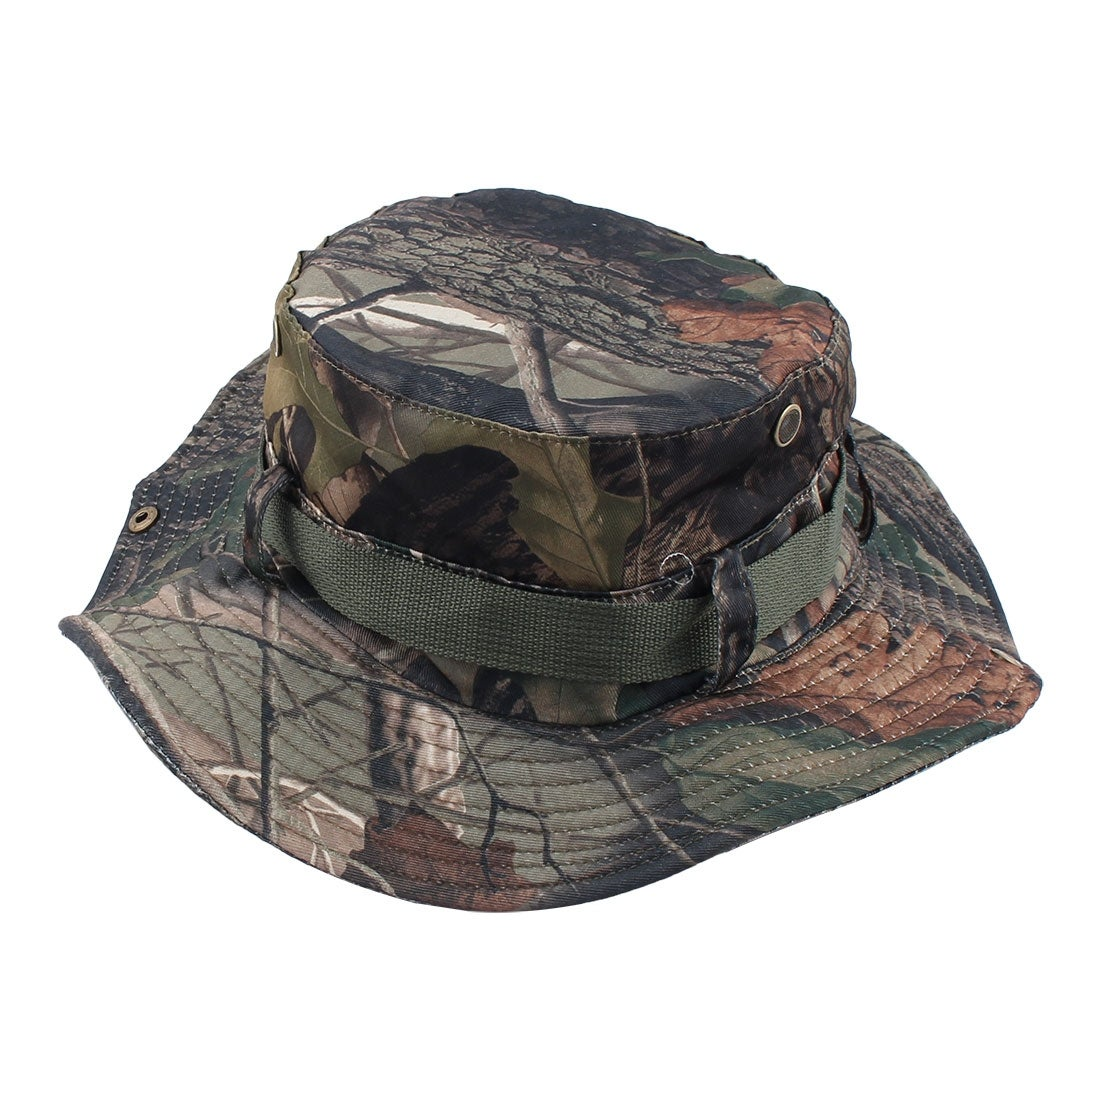 df1e260c84ce25 Shop Fisherman Hunting Wide Brim Protector Bucket Summer Cap Fishing Hat  Camouflage - Free Shipping On Orders Over $45 - Overstock - 18297906